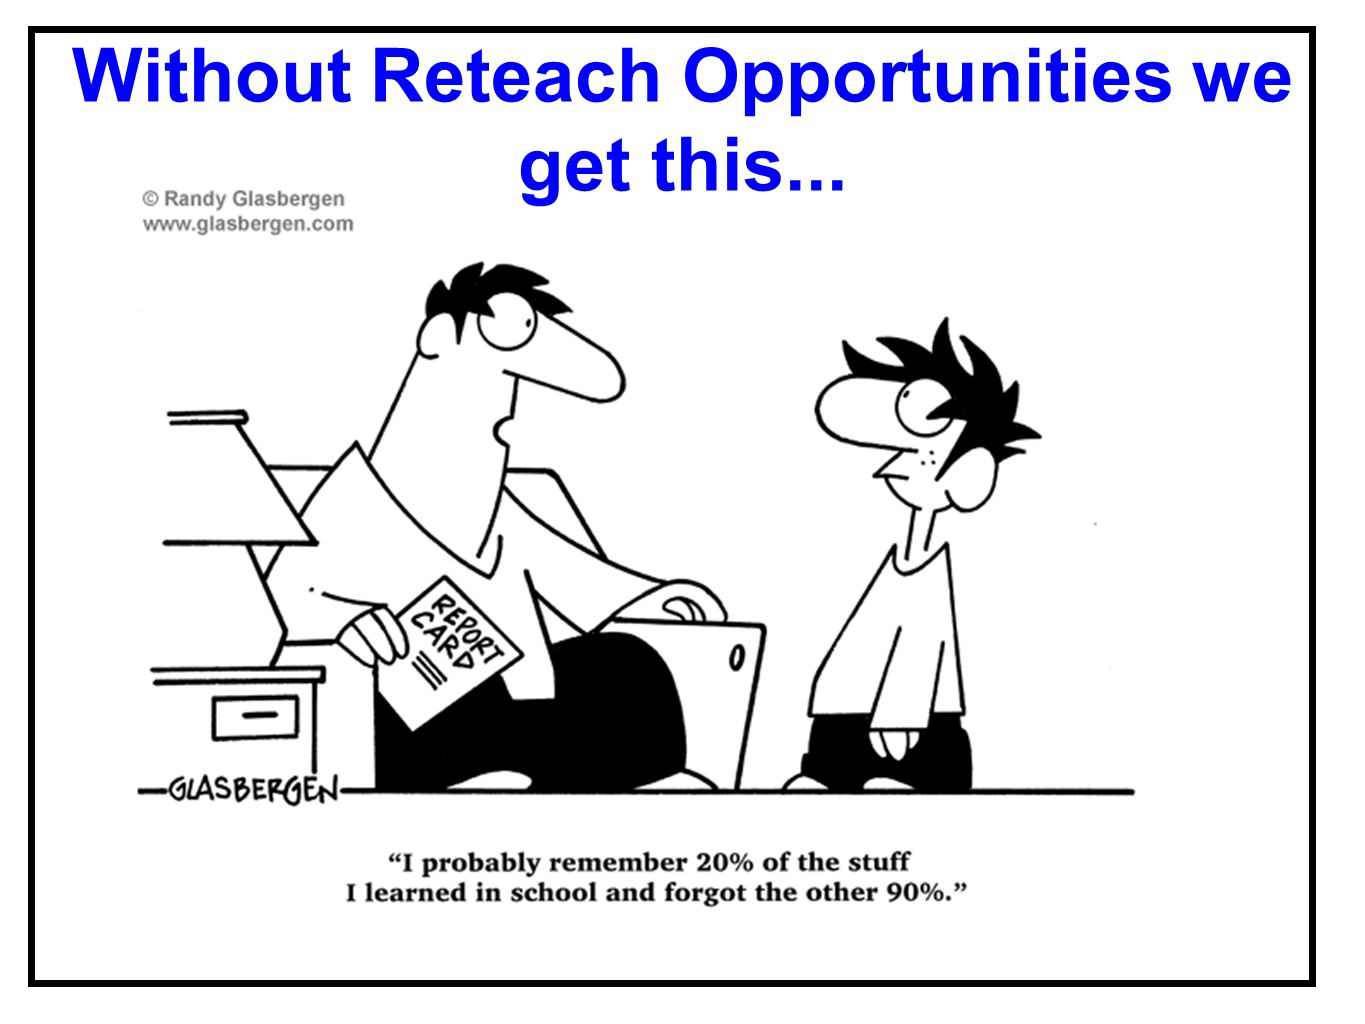 Without Reteach Opportunities we get this...